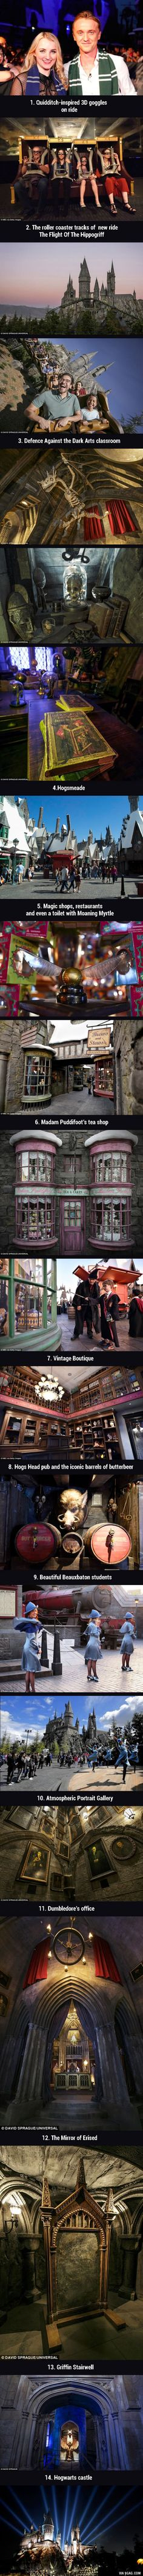 First Look At The Wizarding World of Harry Potter At Los Angeles! I went there!!! It was amazing!